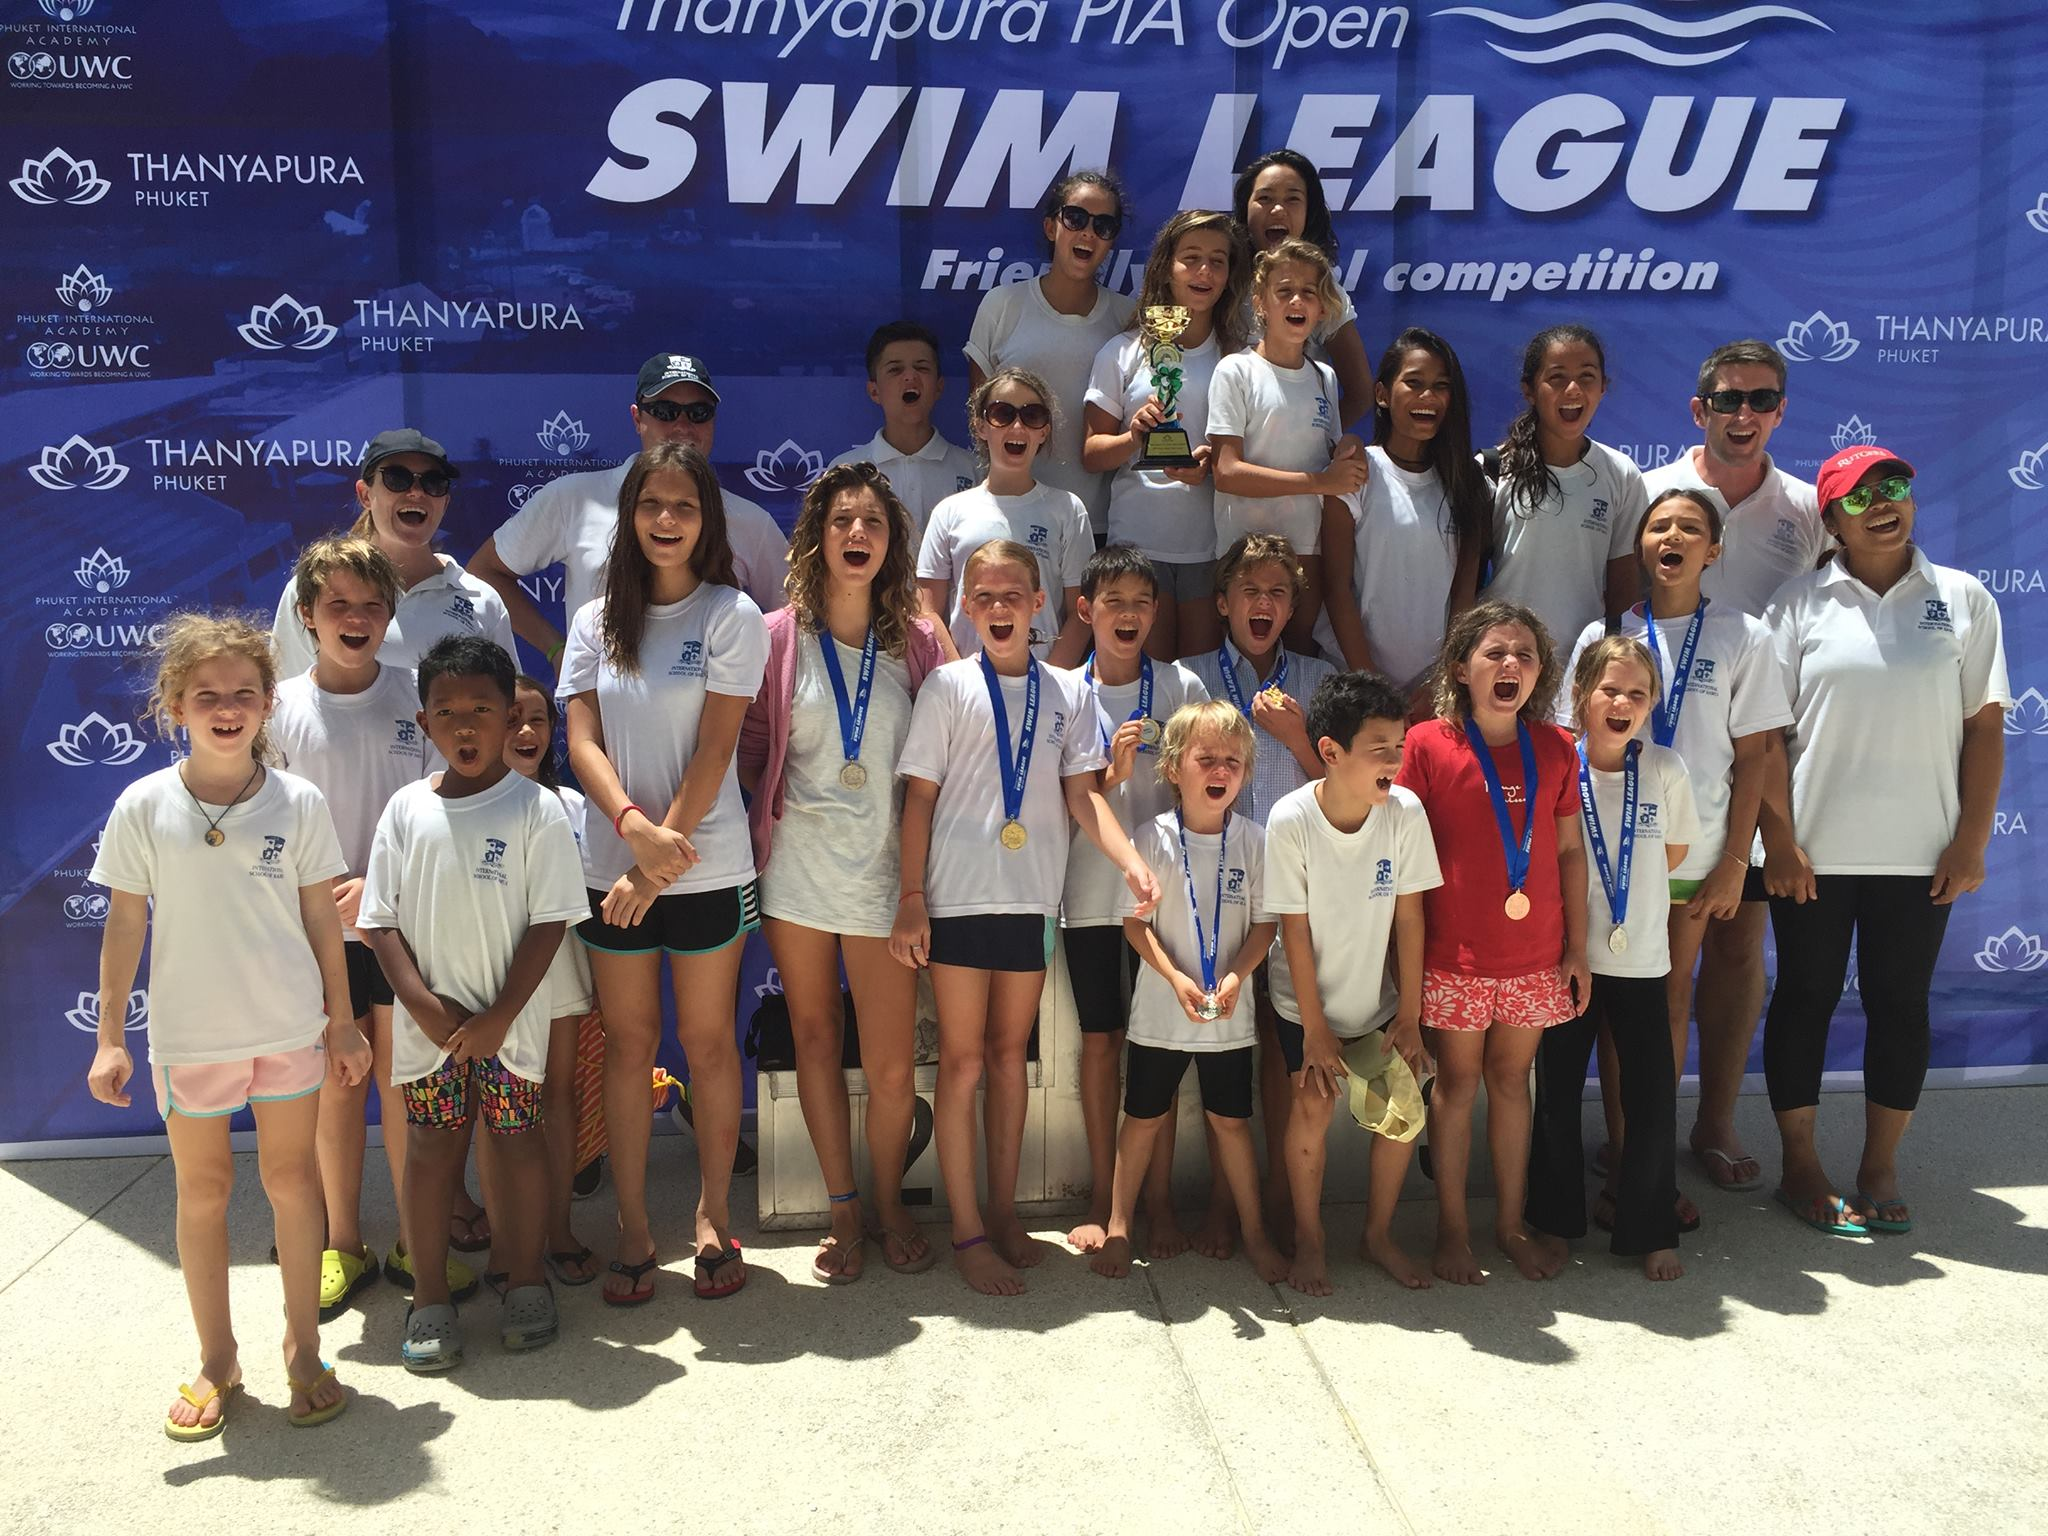 Samui Sharks Swim Team Sweeps to 1st Place | Samui Times